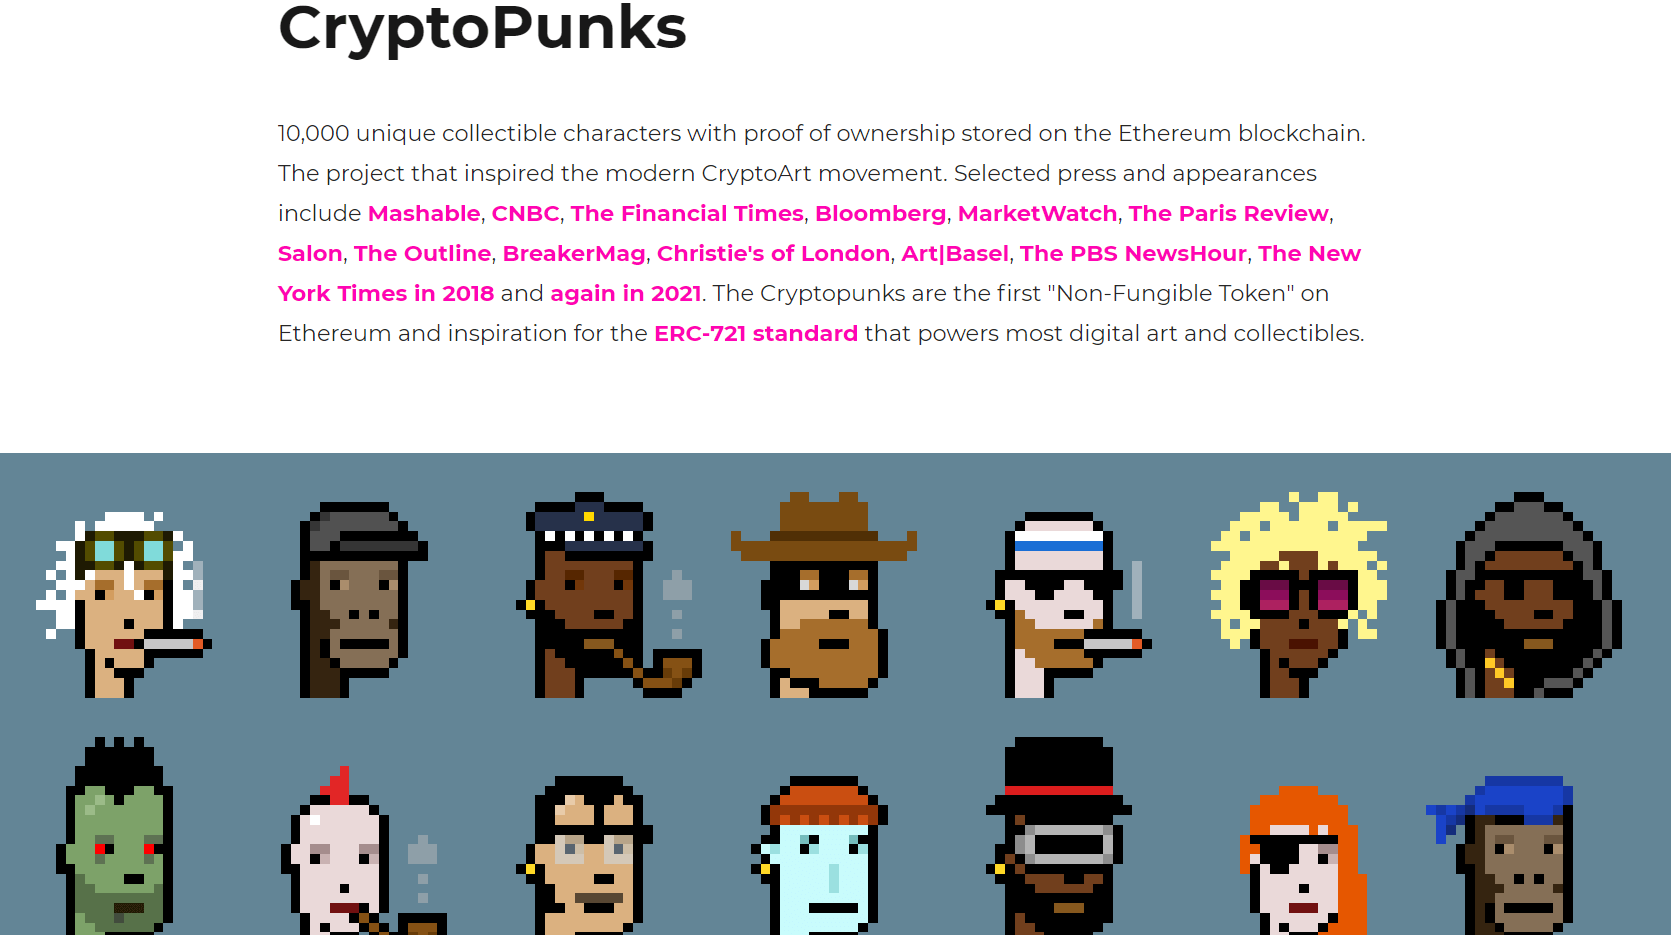 cryptopunks invest in NFTs